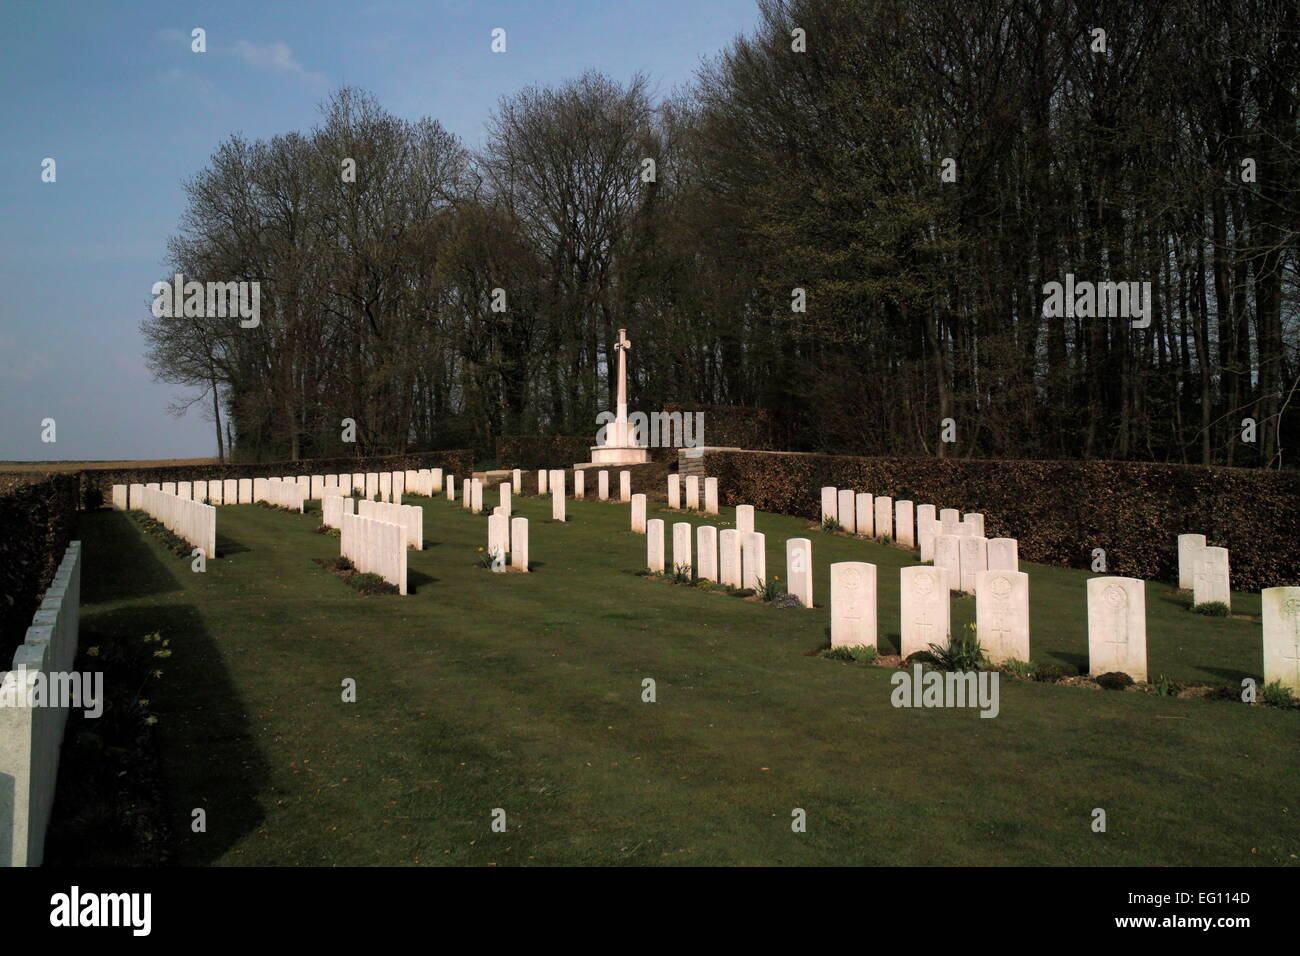 AJAXNETPHOTO. BAZENTIN LE PETIT, SOMME, FRANCE. - WAR GRAVES - BAZENTIN LE PETIT COMMUNAL CEMETERY AND EXTENSION, - Stock Image